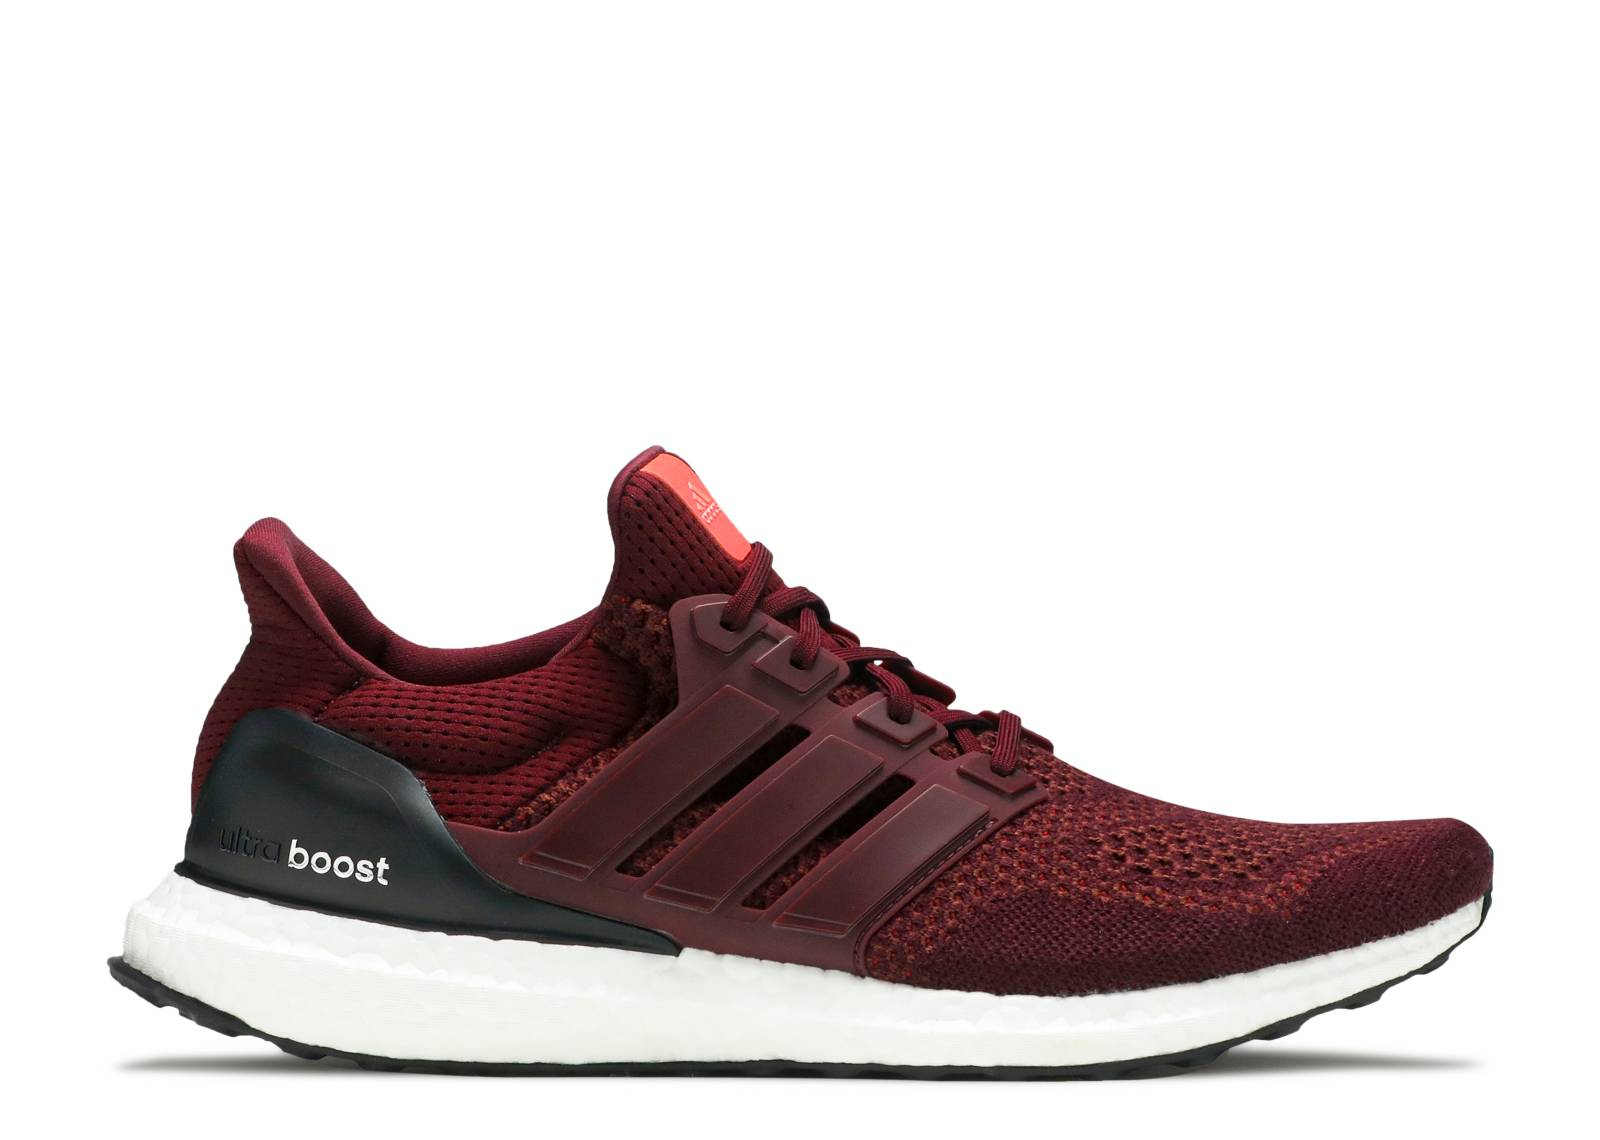 finest selection 7127f 59d1b Ultra Boost - Adidas - af5836 - burgundy maroon   Flight Club